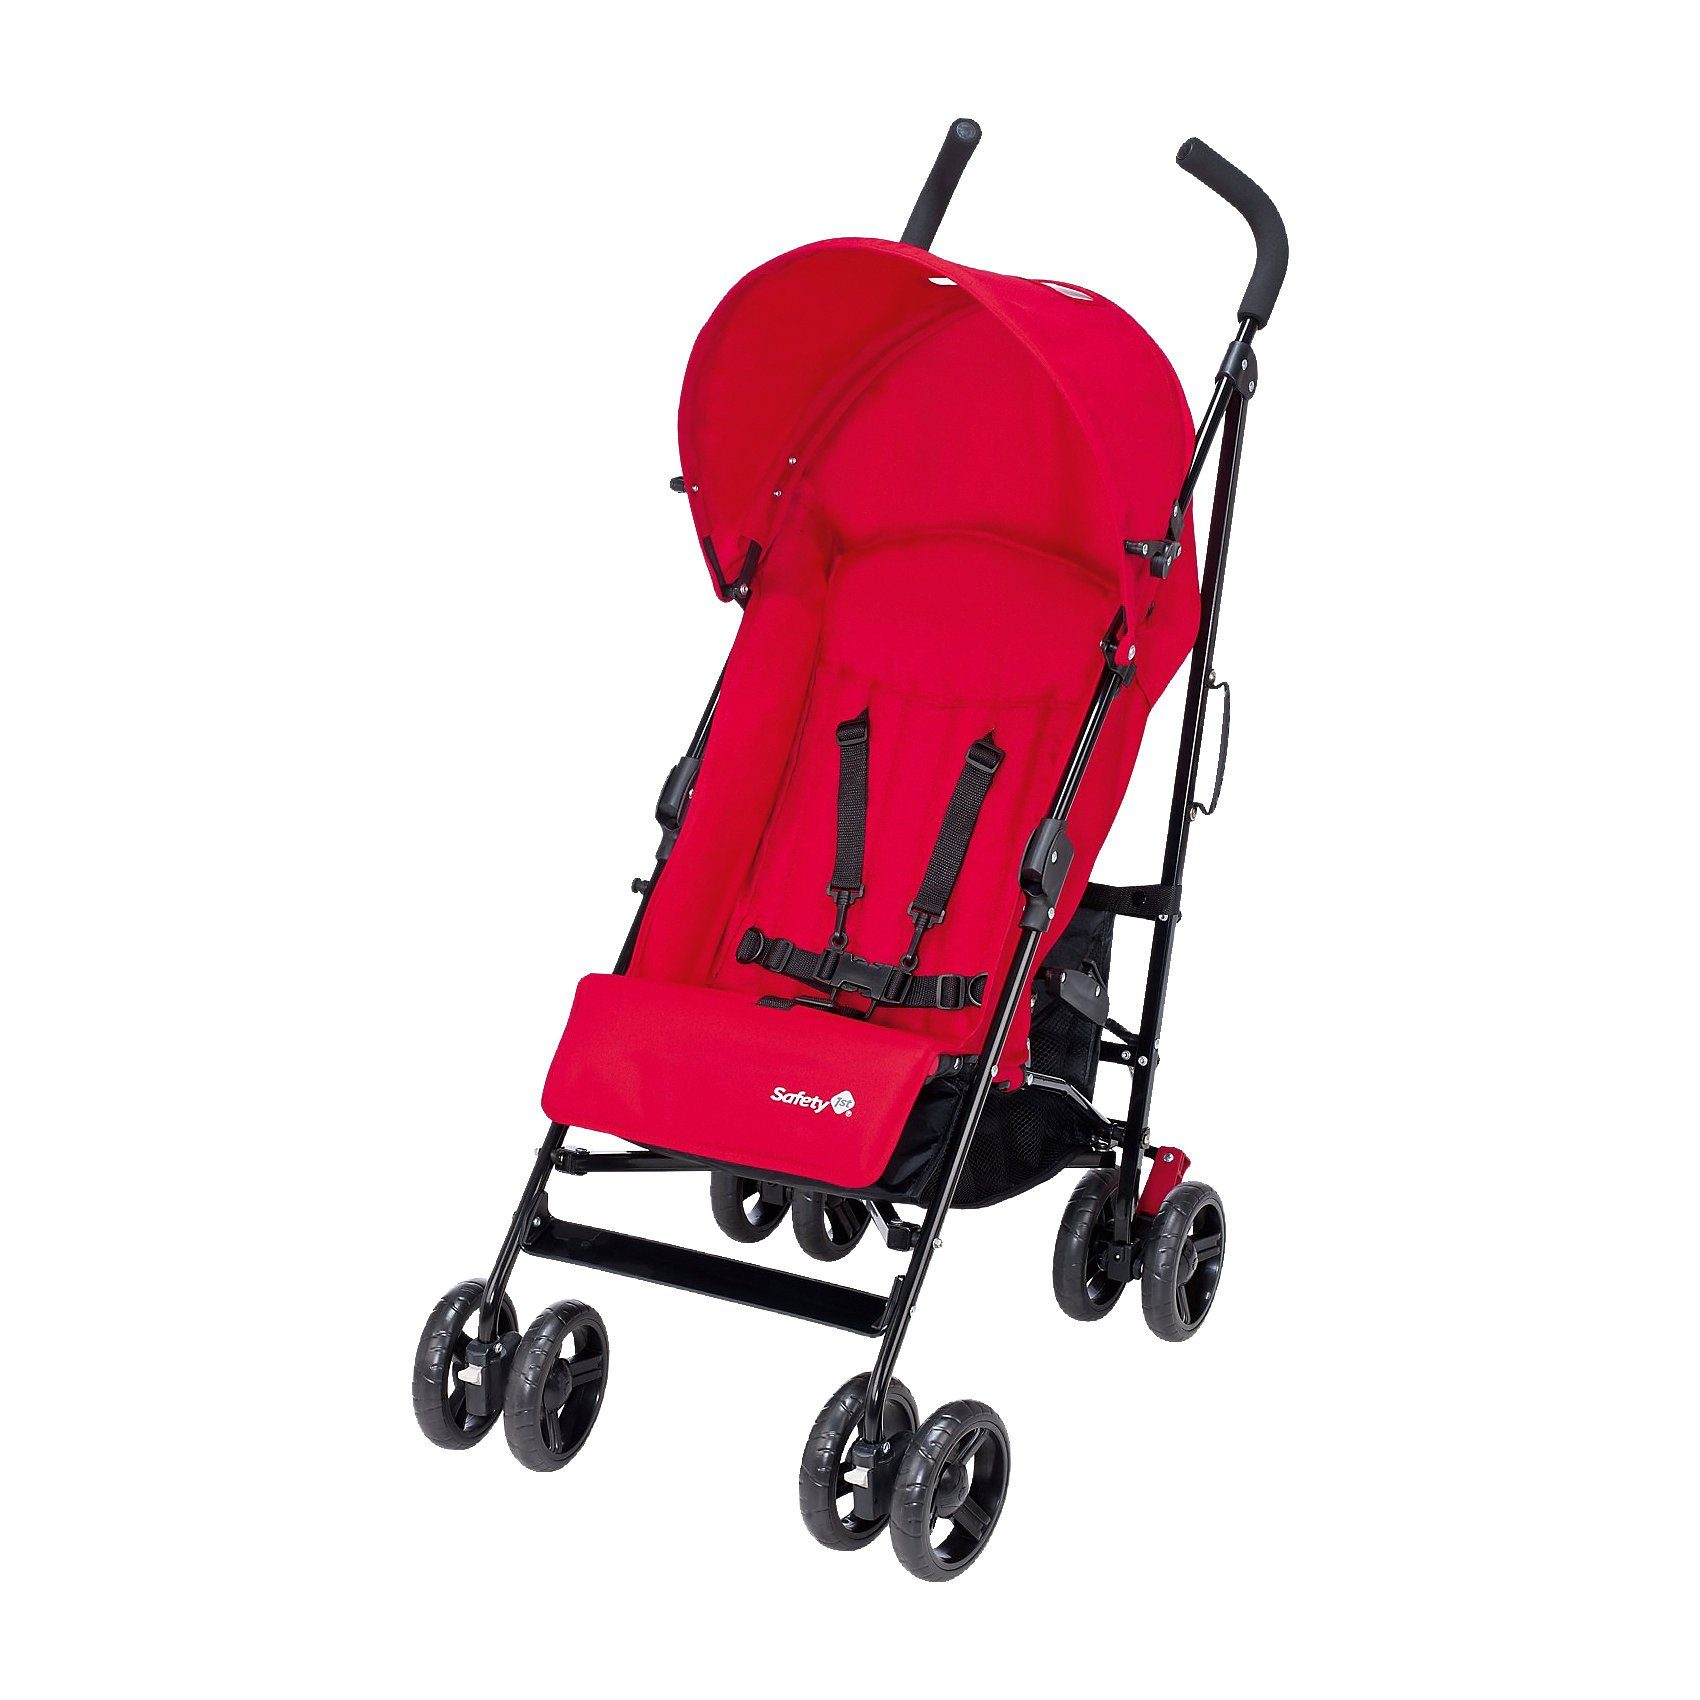 Safety 1st Buggy Slim inkl. Sonnenverdeck, plain red, 2017